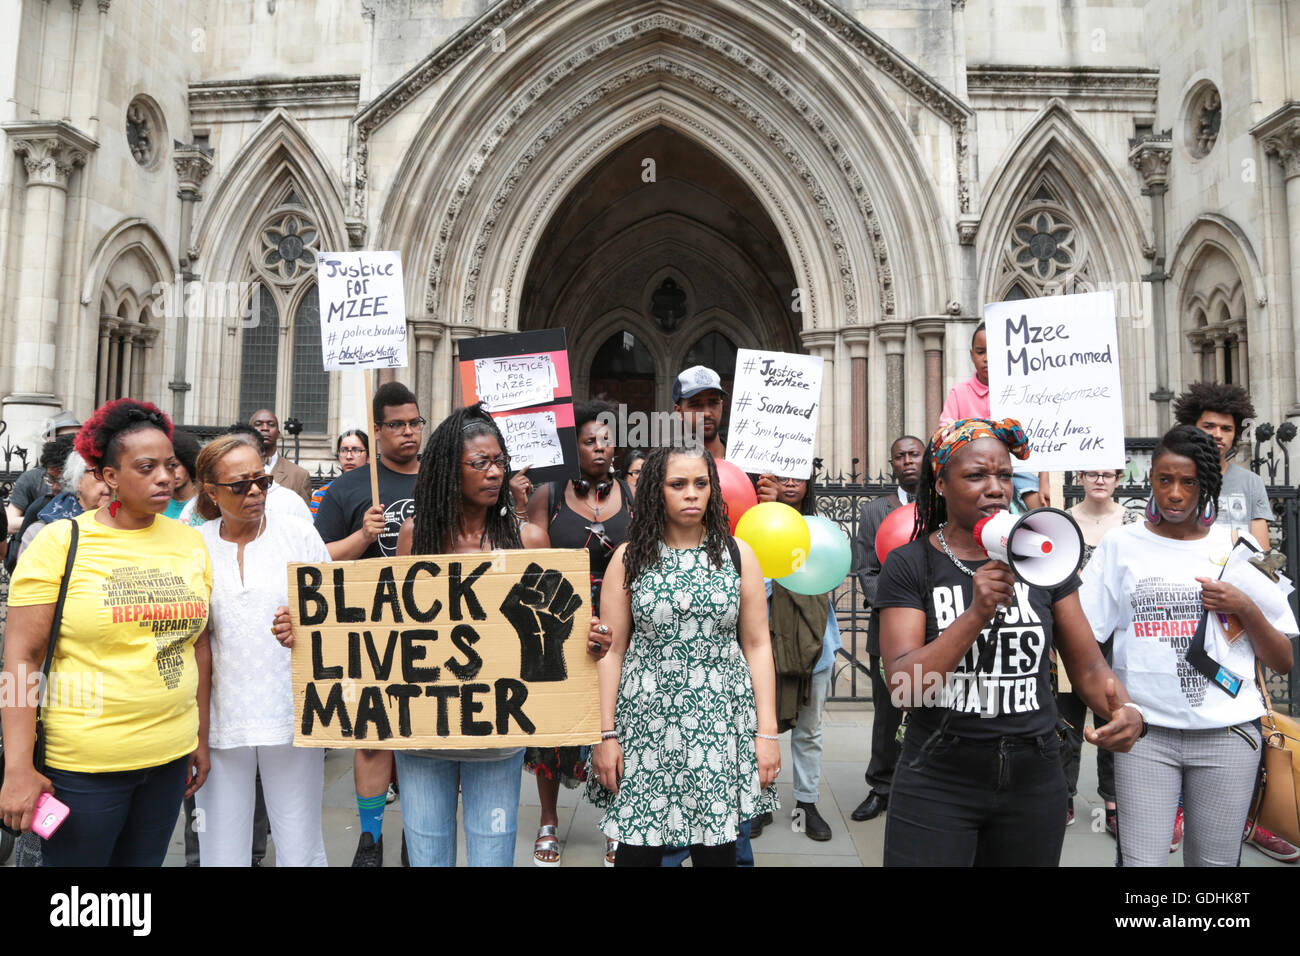 London, UK. 17th July, 2016. People with banners and placards stand out side the Royal Courts of Justice in central - Stock Image